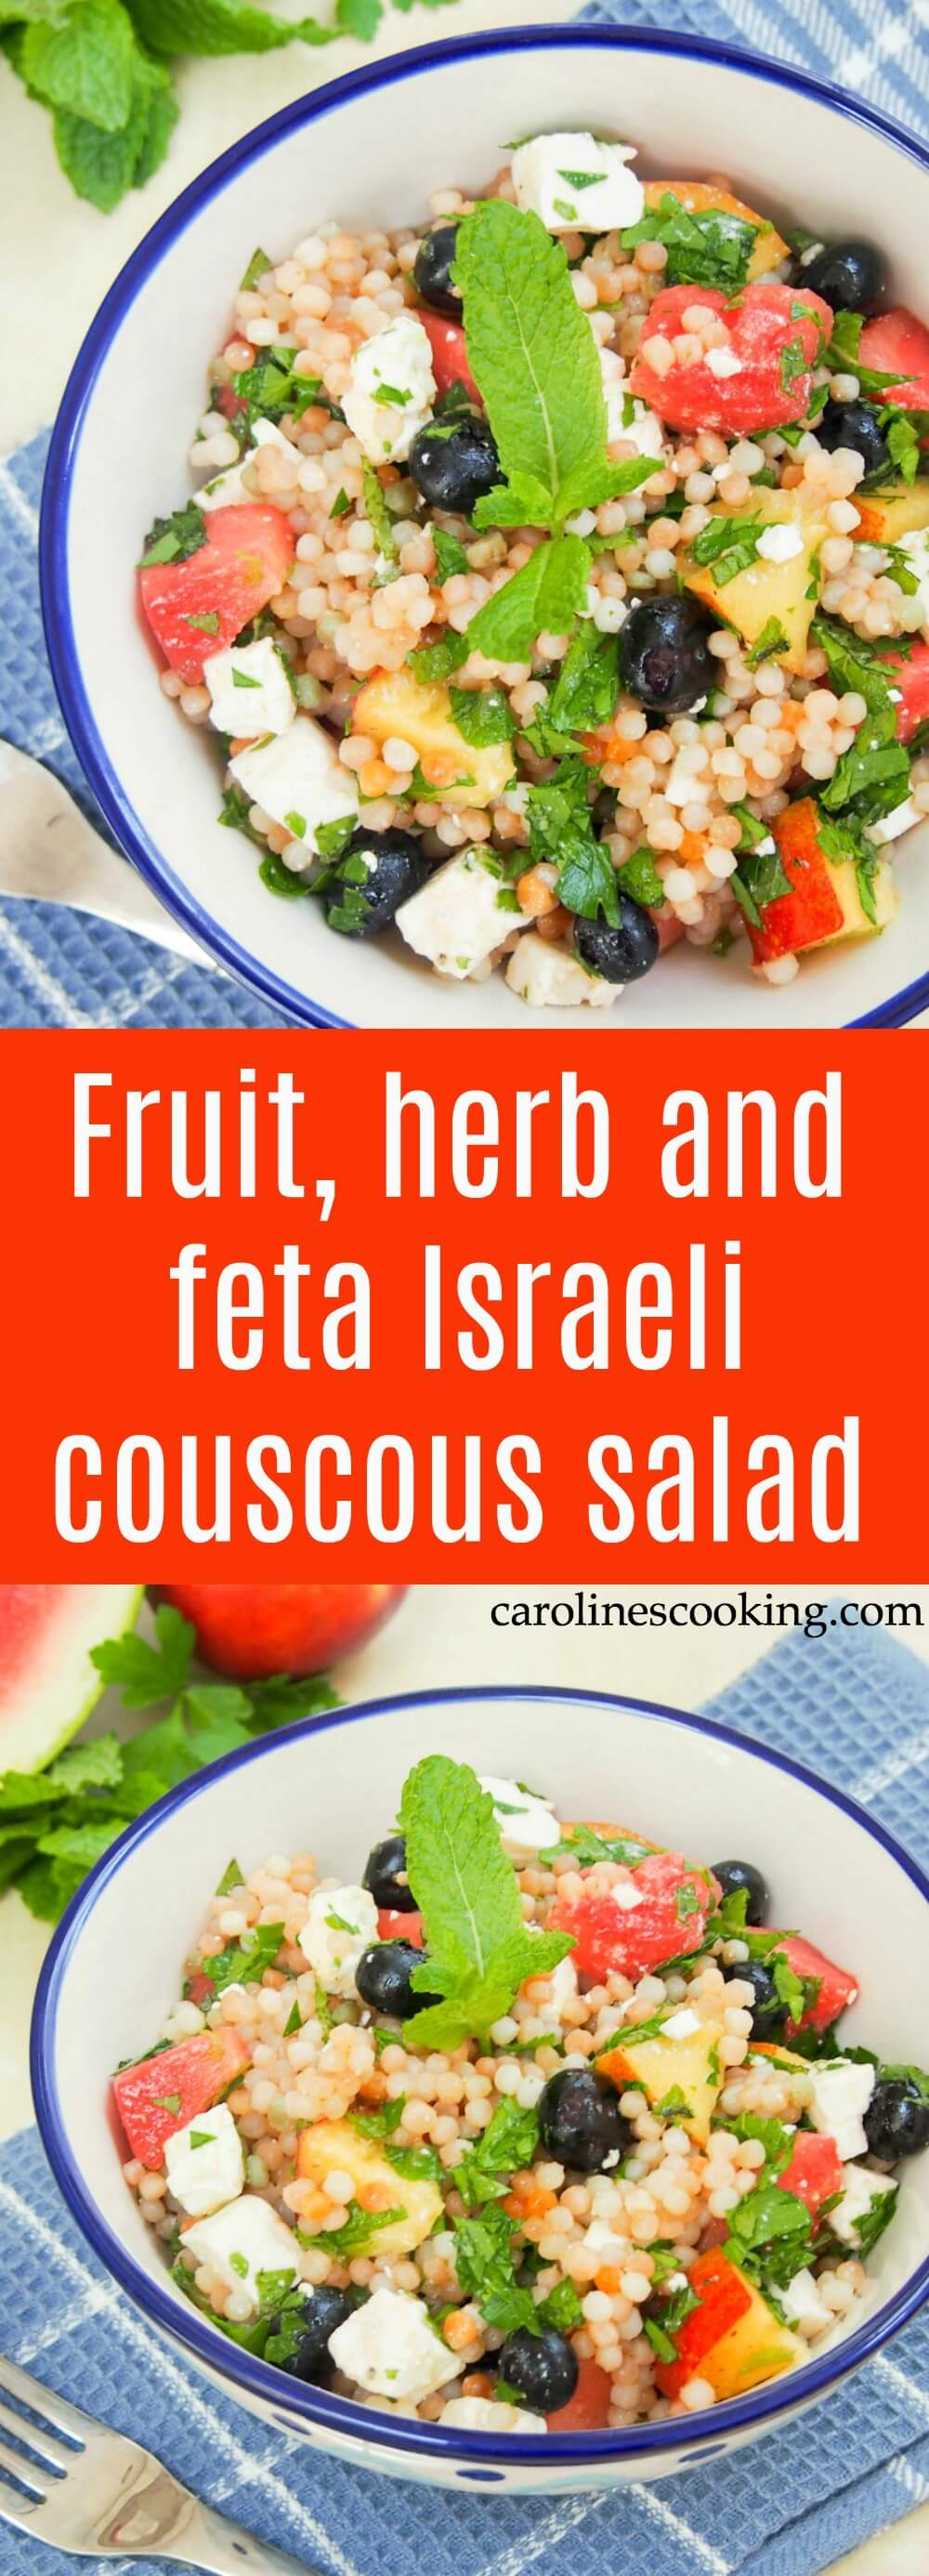 This fruit, herb and feta Israeli couscous salad is light and refreshing with fresh fruit and cooling herbs, but filling enough to be a great lunch or side. Perfect for summer